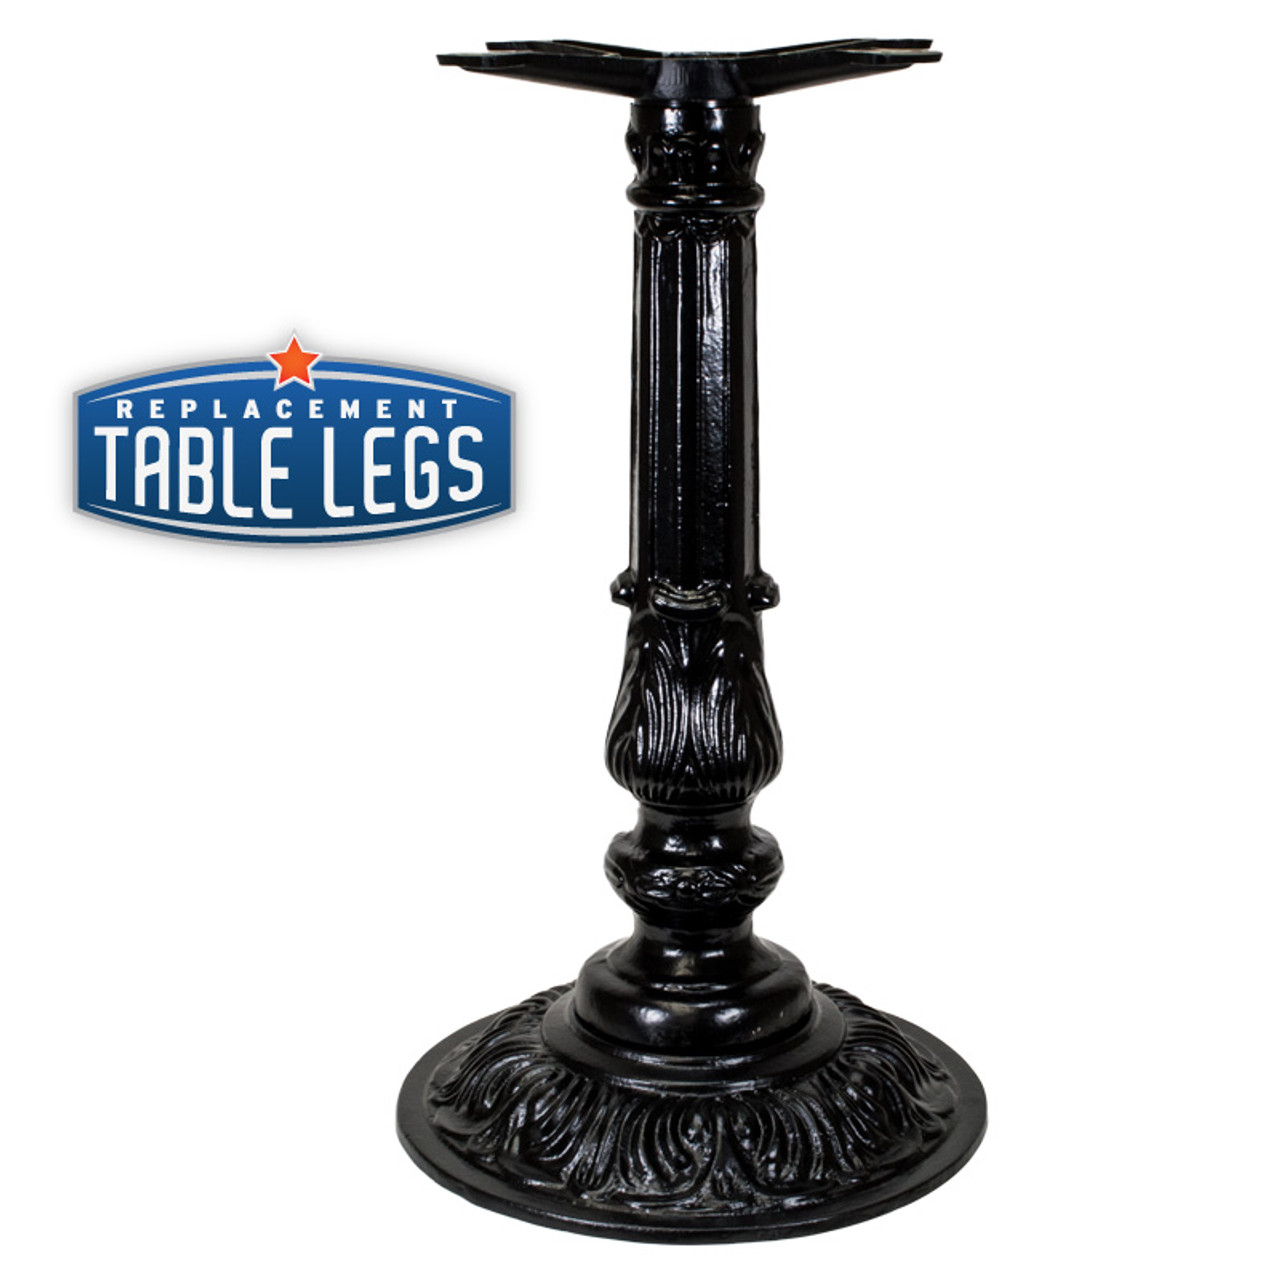 "CAST IRON ORNAMENTAL TABLE BASE, 16"" round base, Semi-Gloss Black, 28-1/2"" height, cast iron column with steel plate attachment - replacementtablelegs.com"